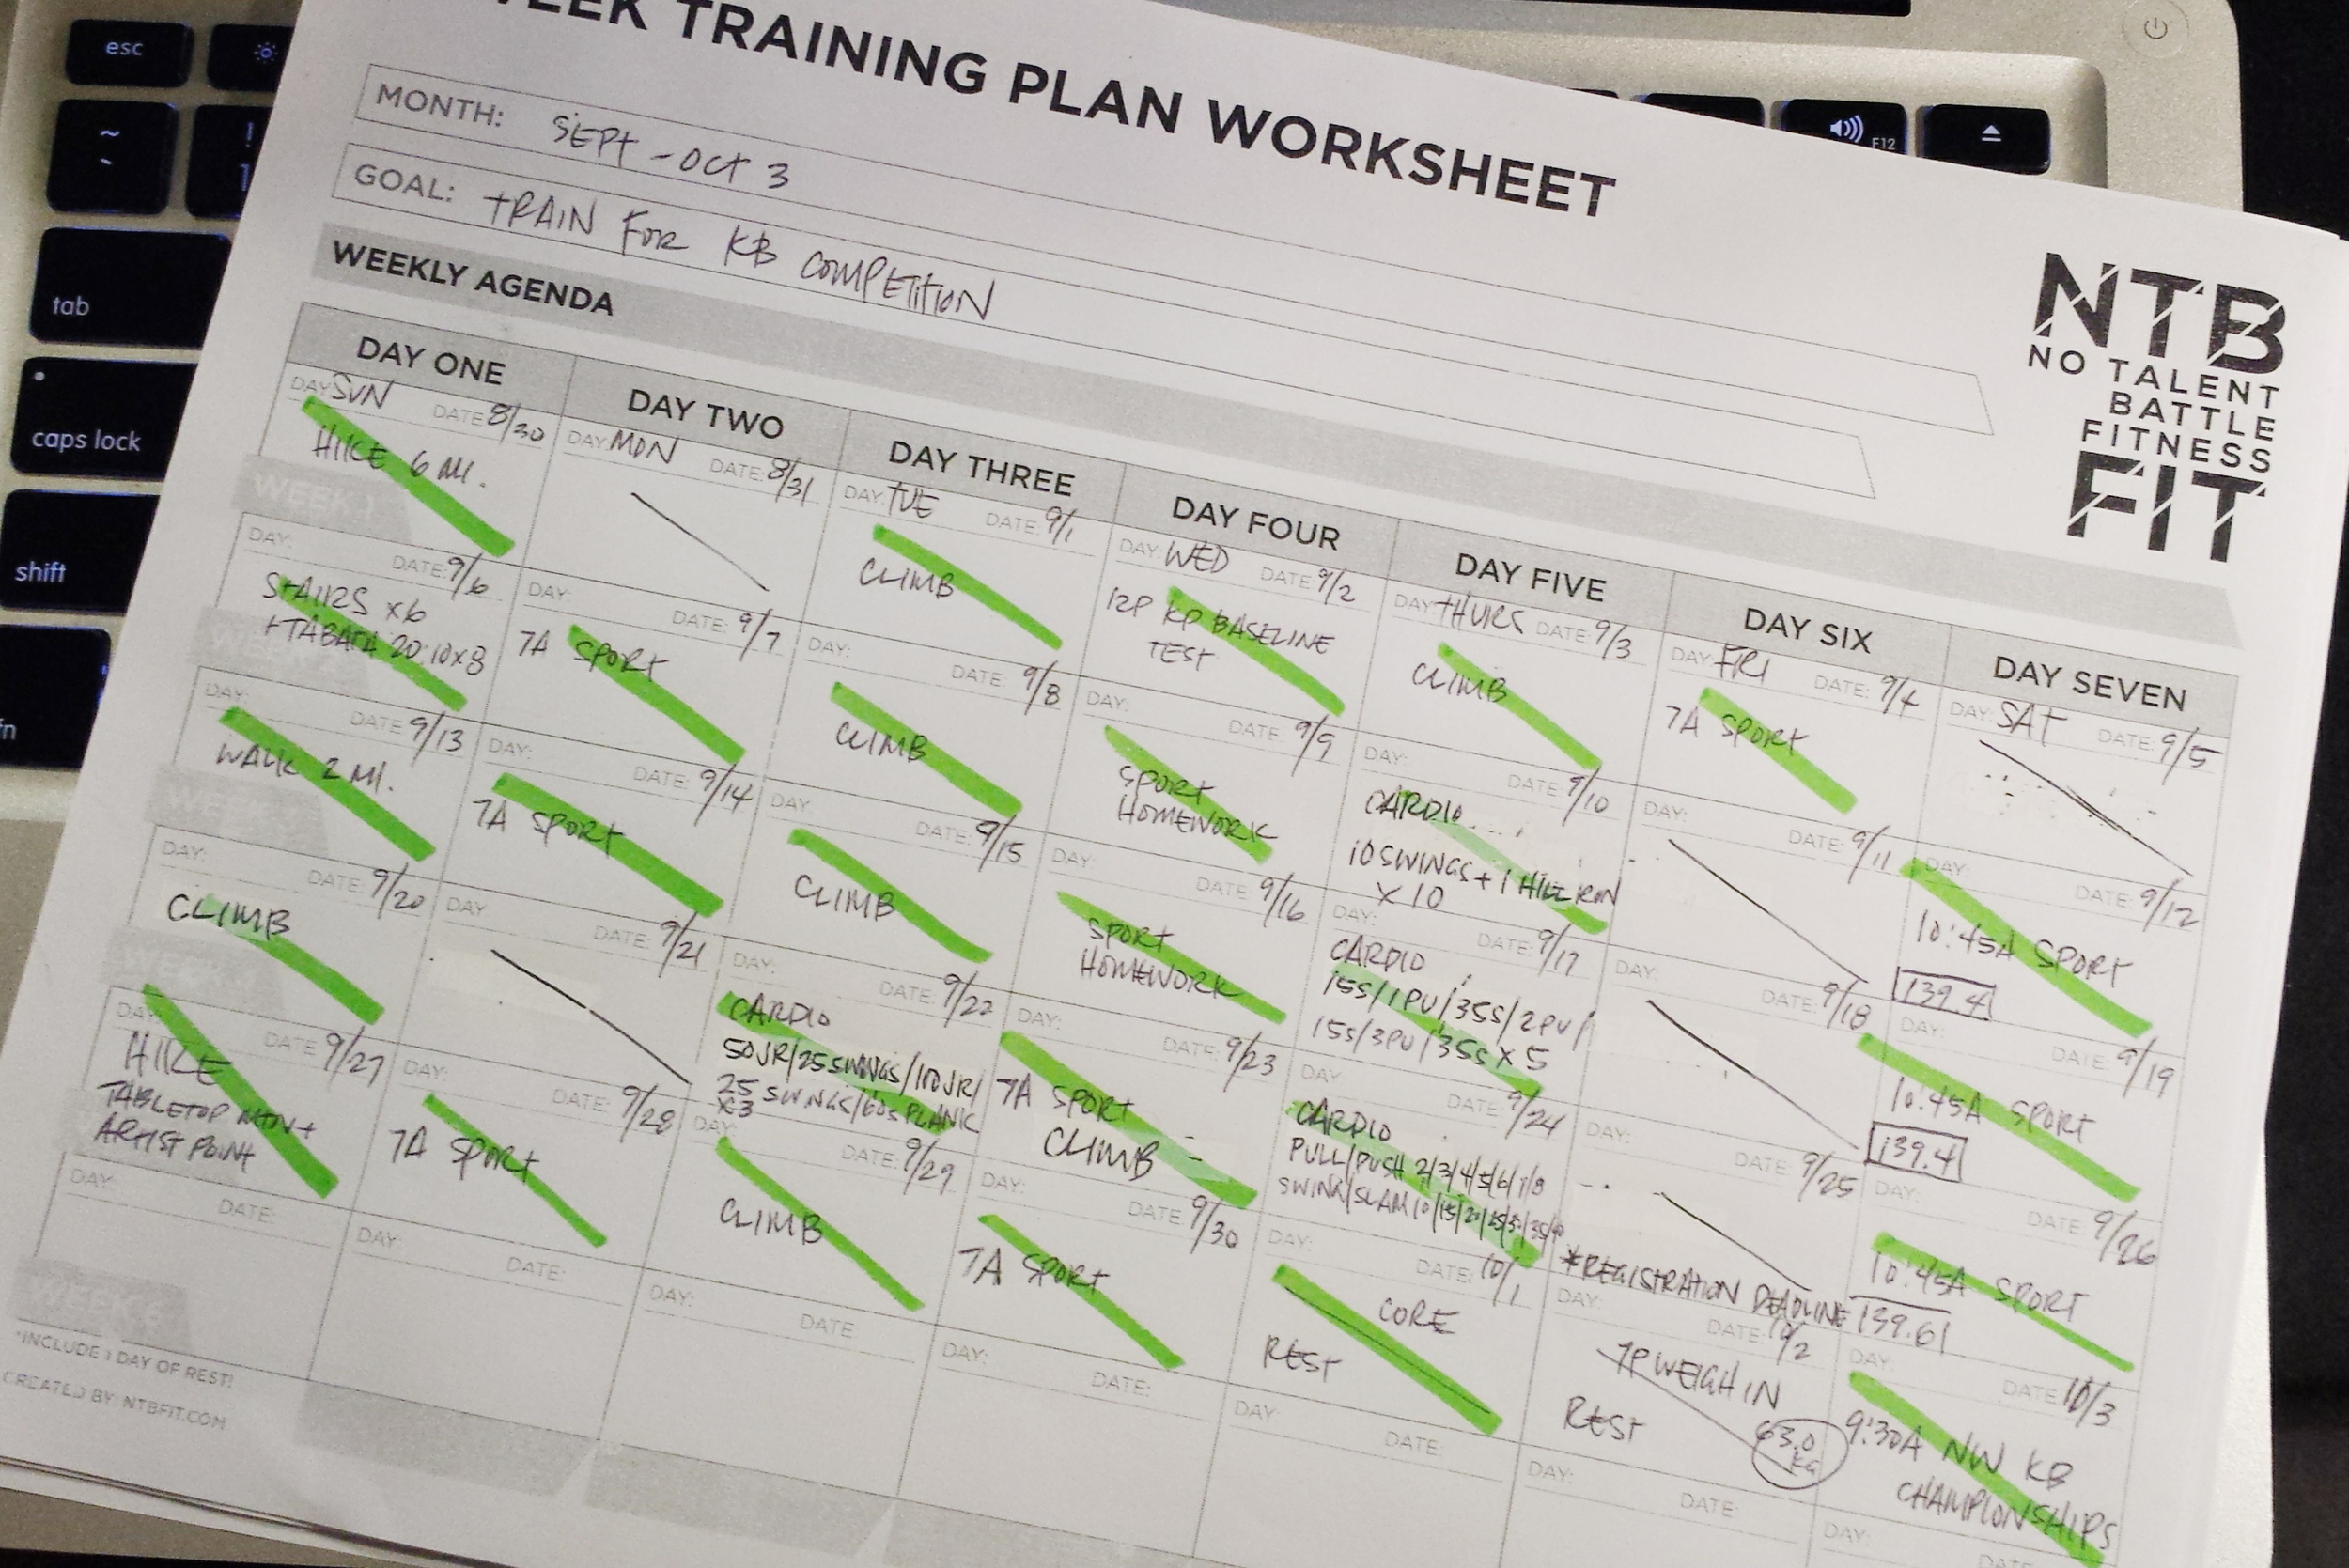 A sneak peek at my training plan.